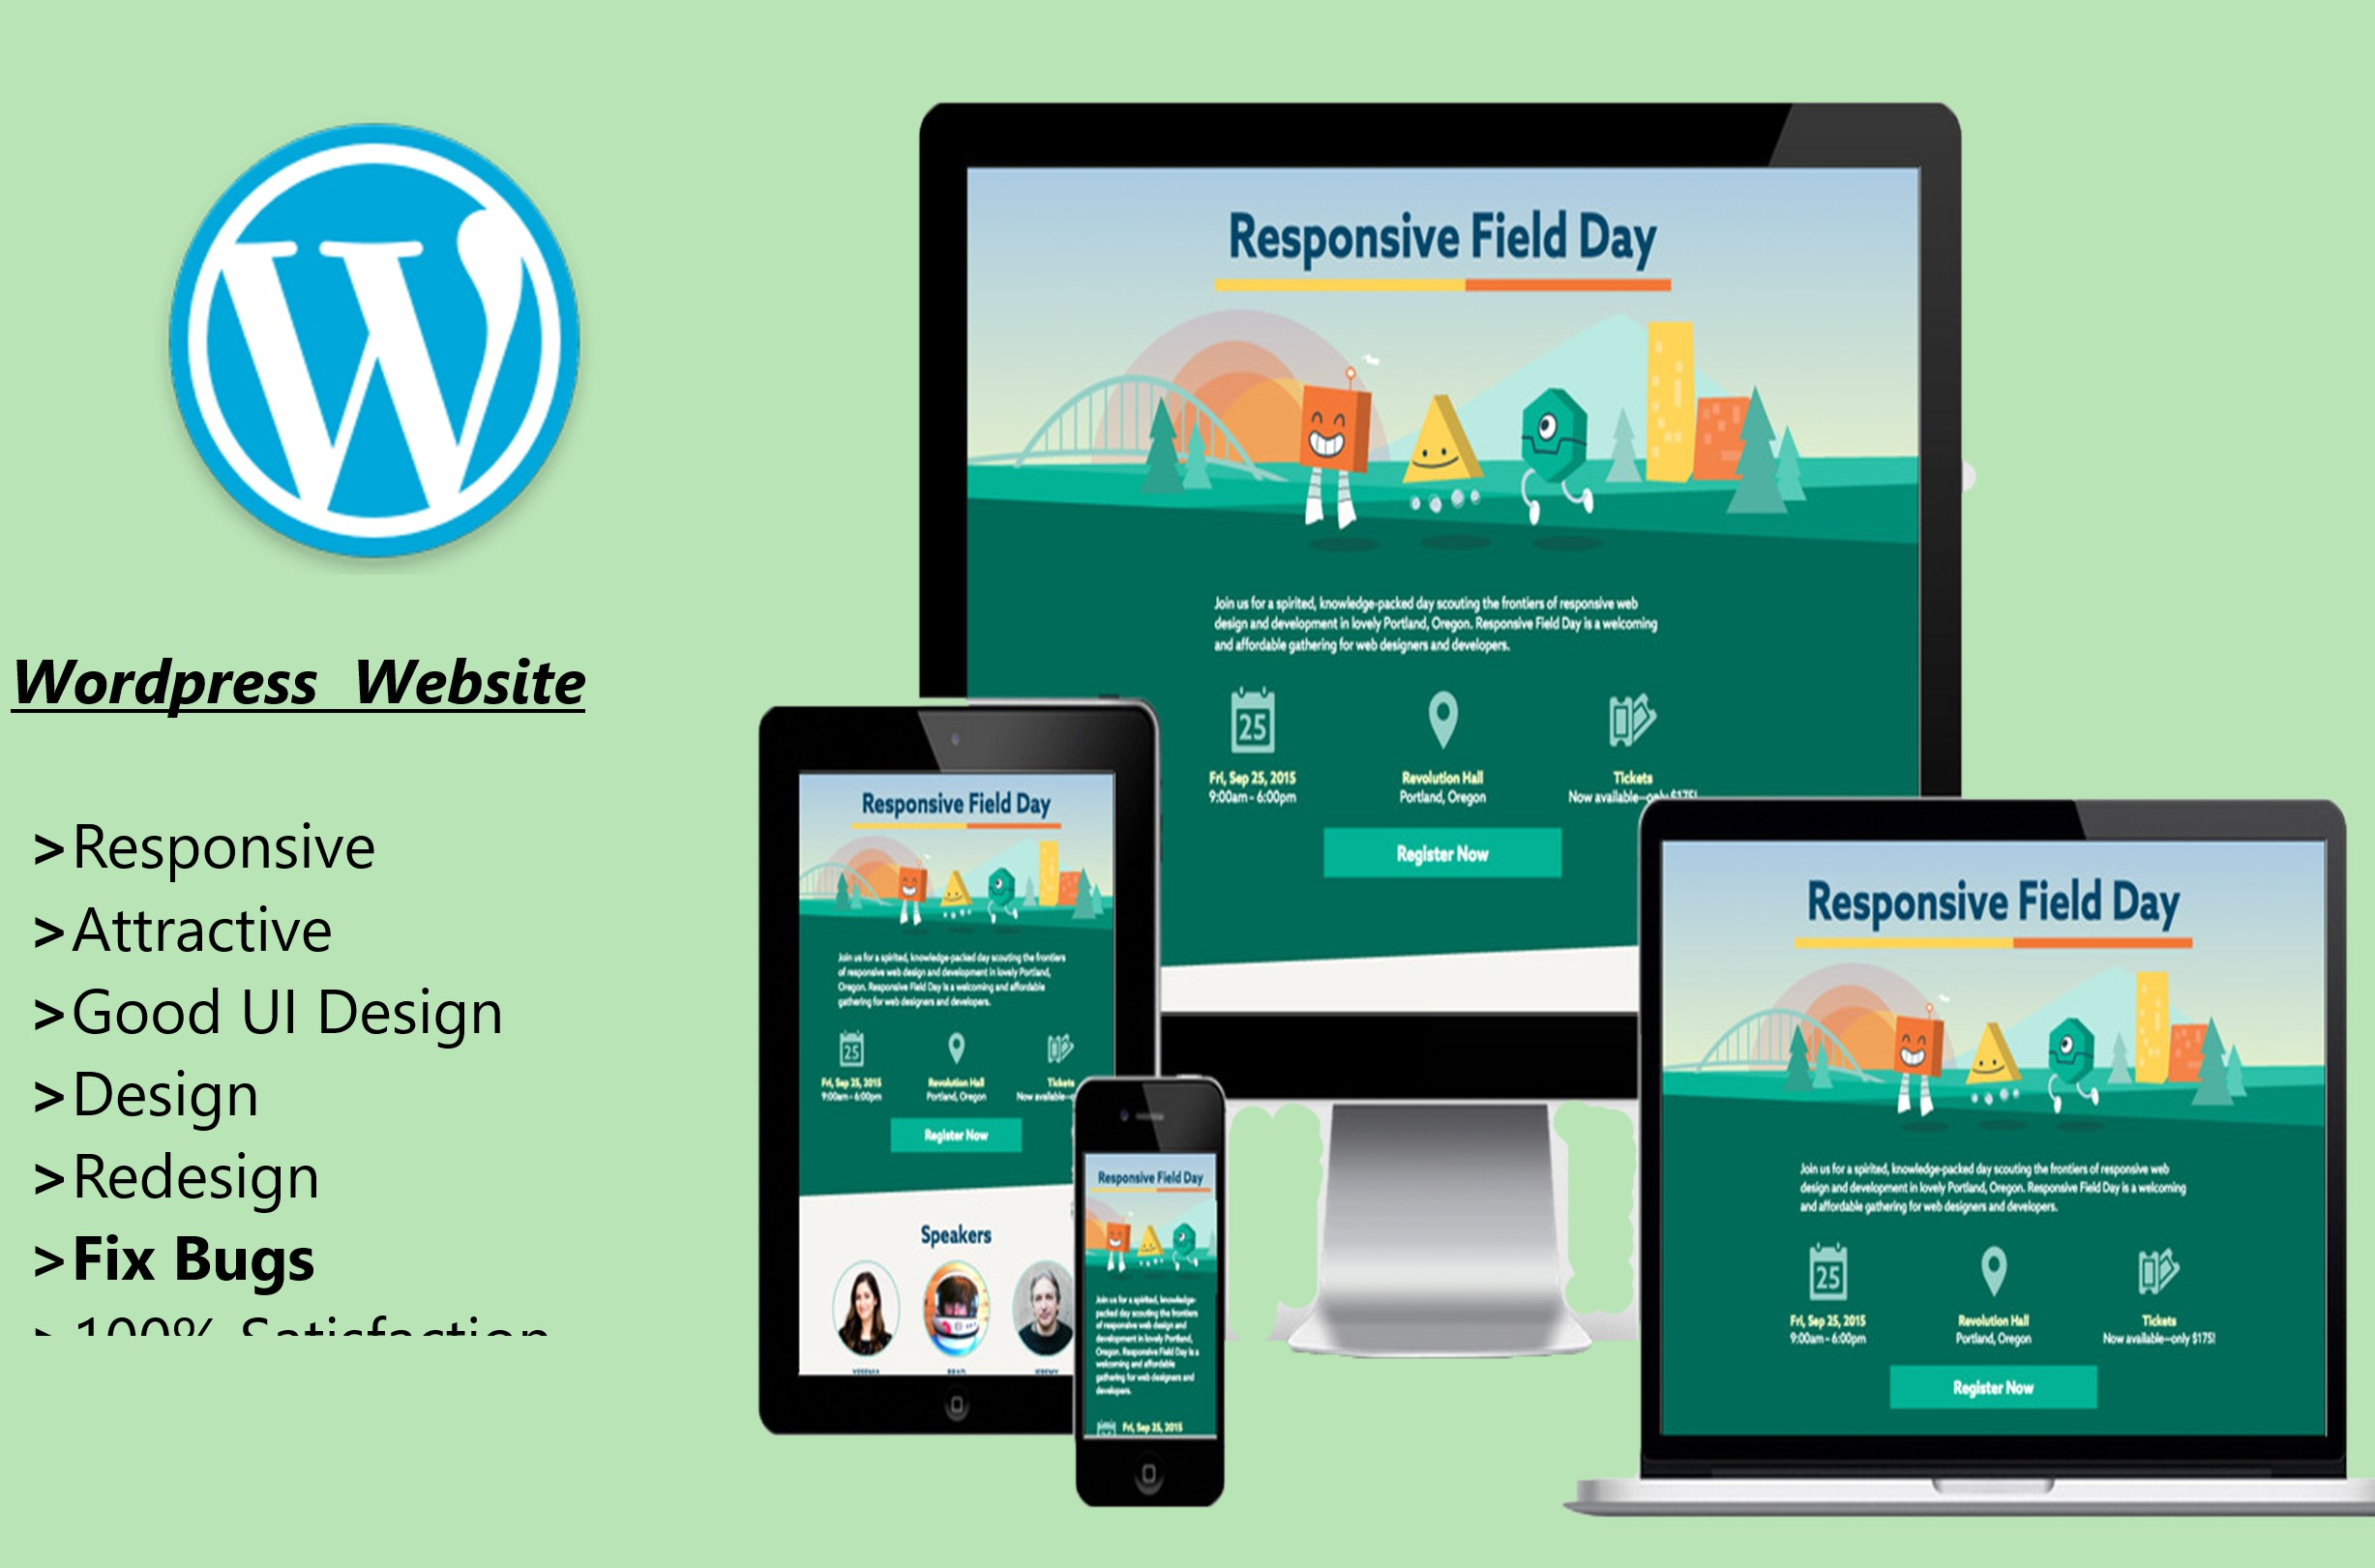 I will develope a responsive wordpress website and blog